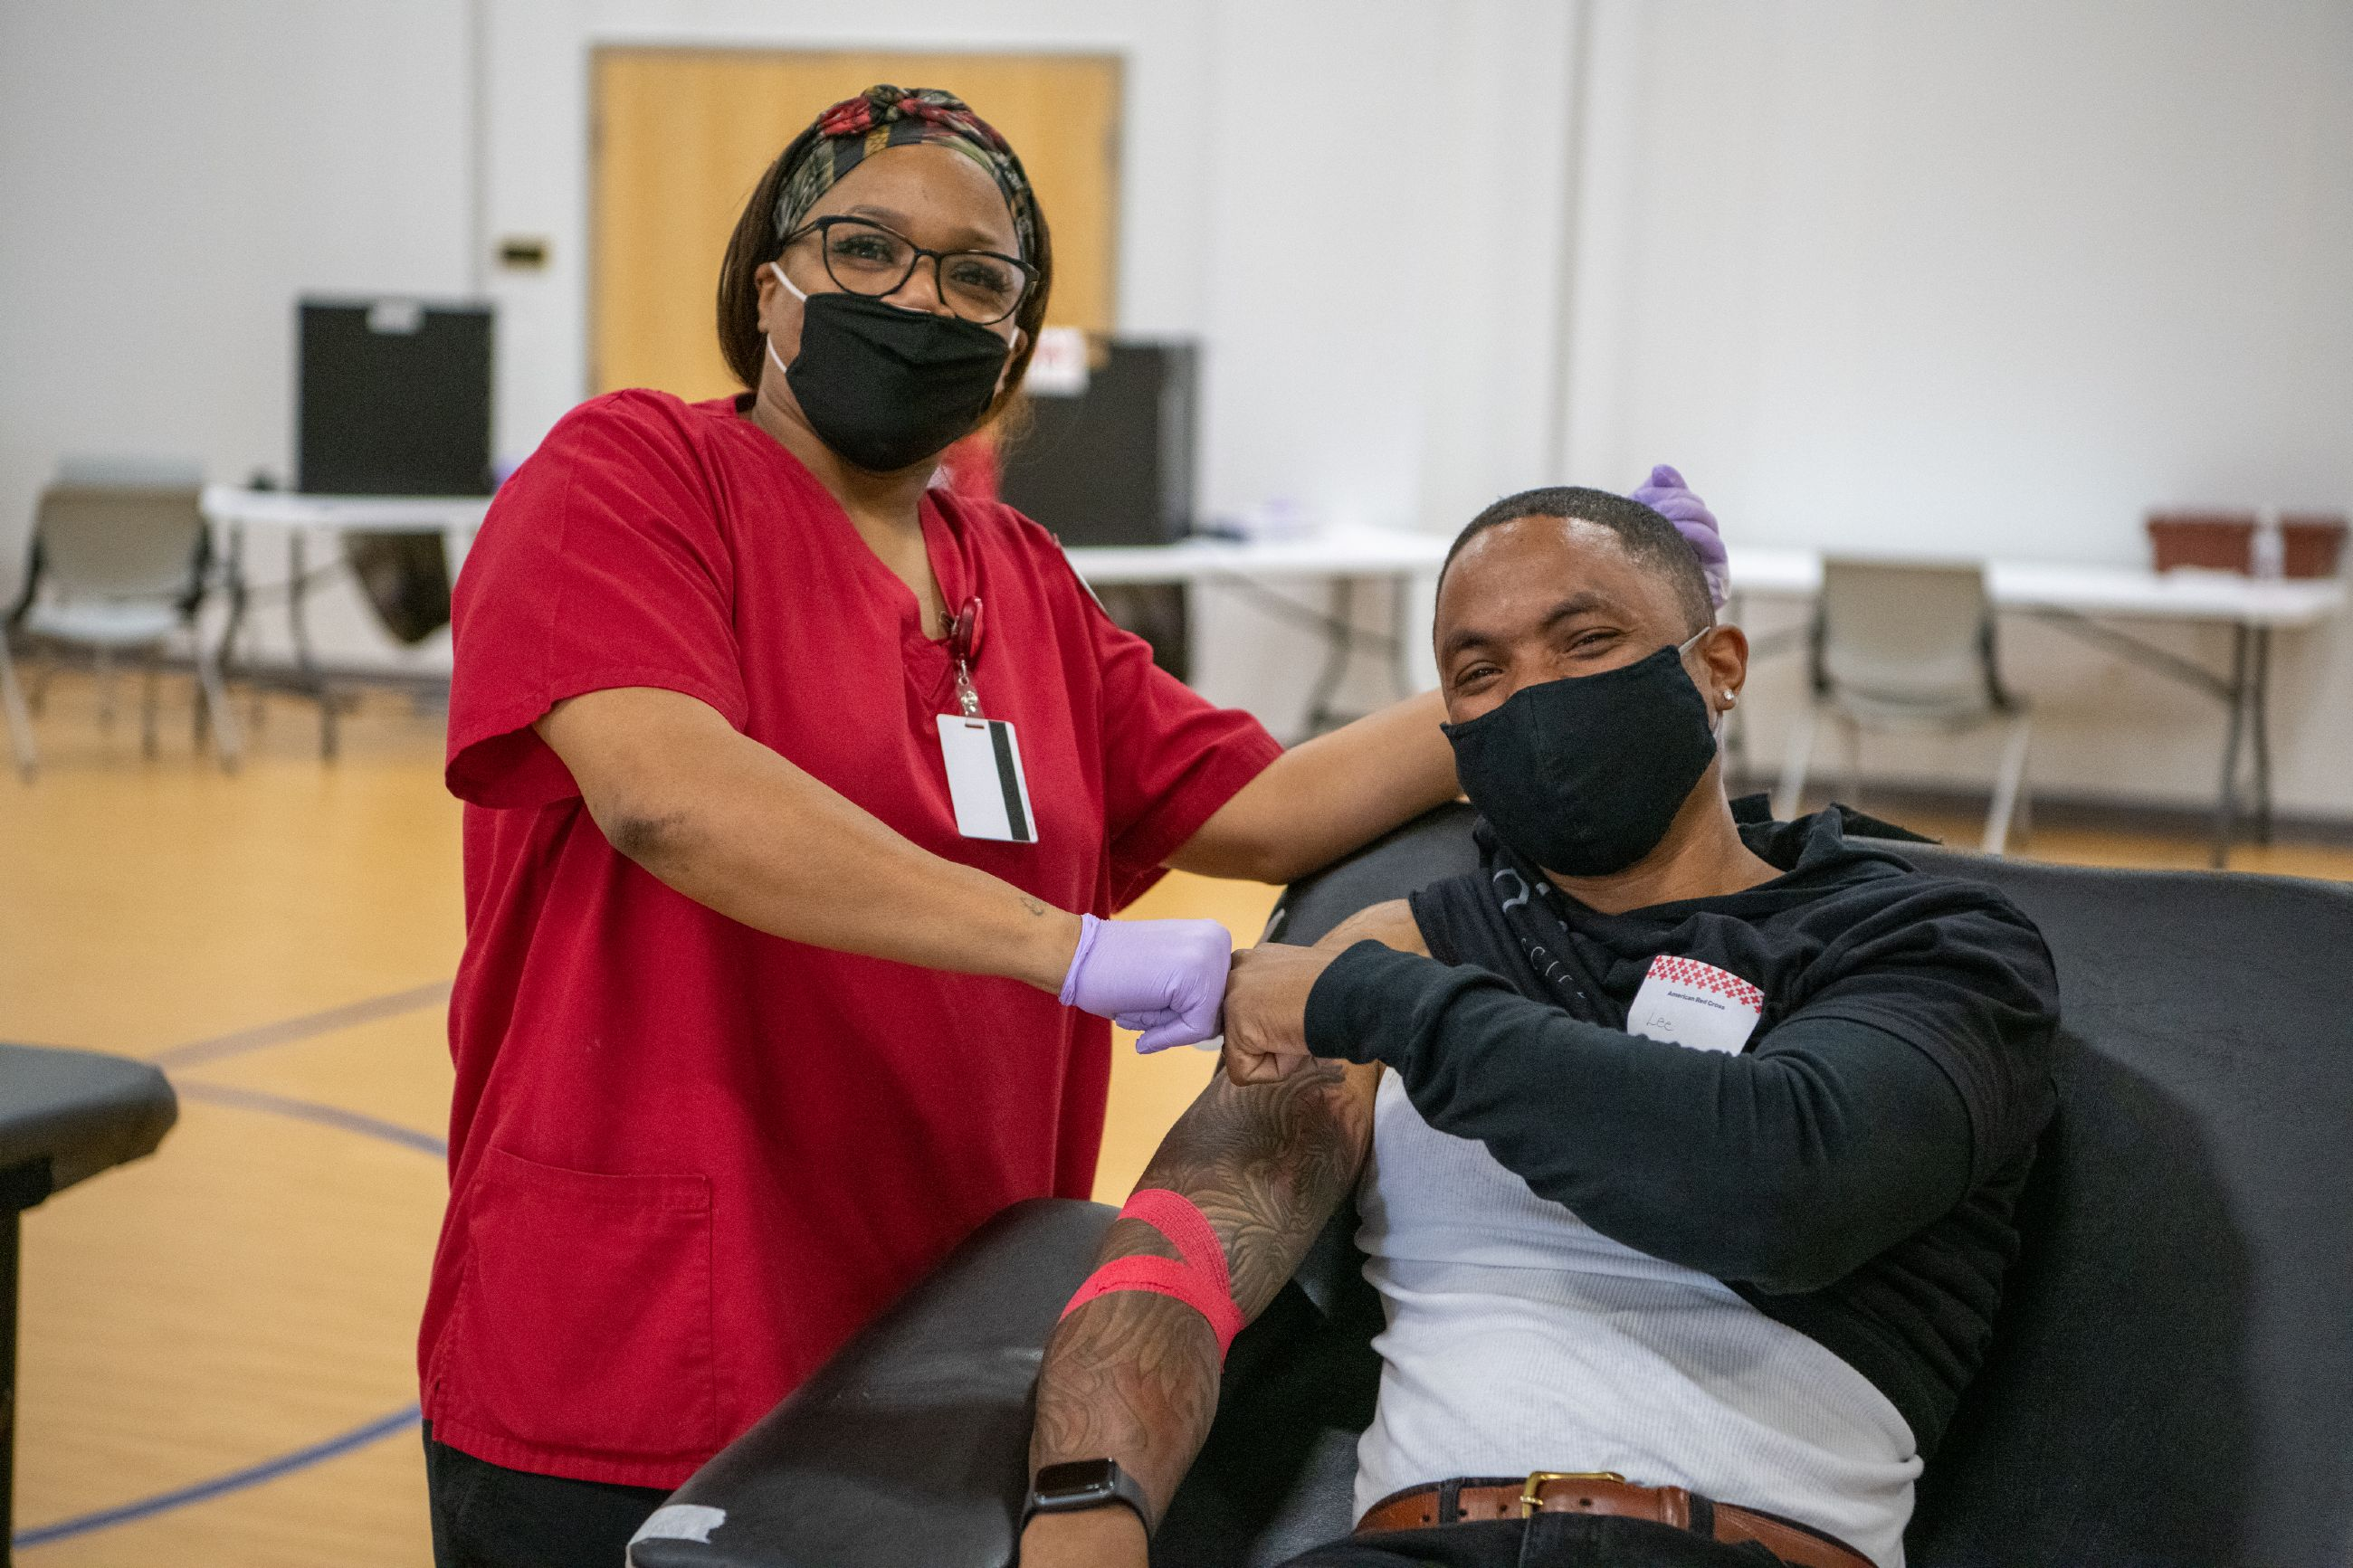 November 22, 2020. Portsmouth, Virginia. Grove Church Blood Drive 2020. Photos by Jared Beasley/American Red Cross